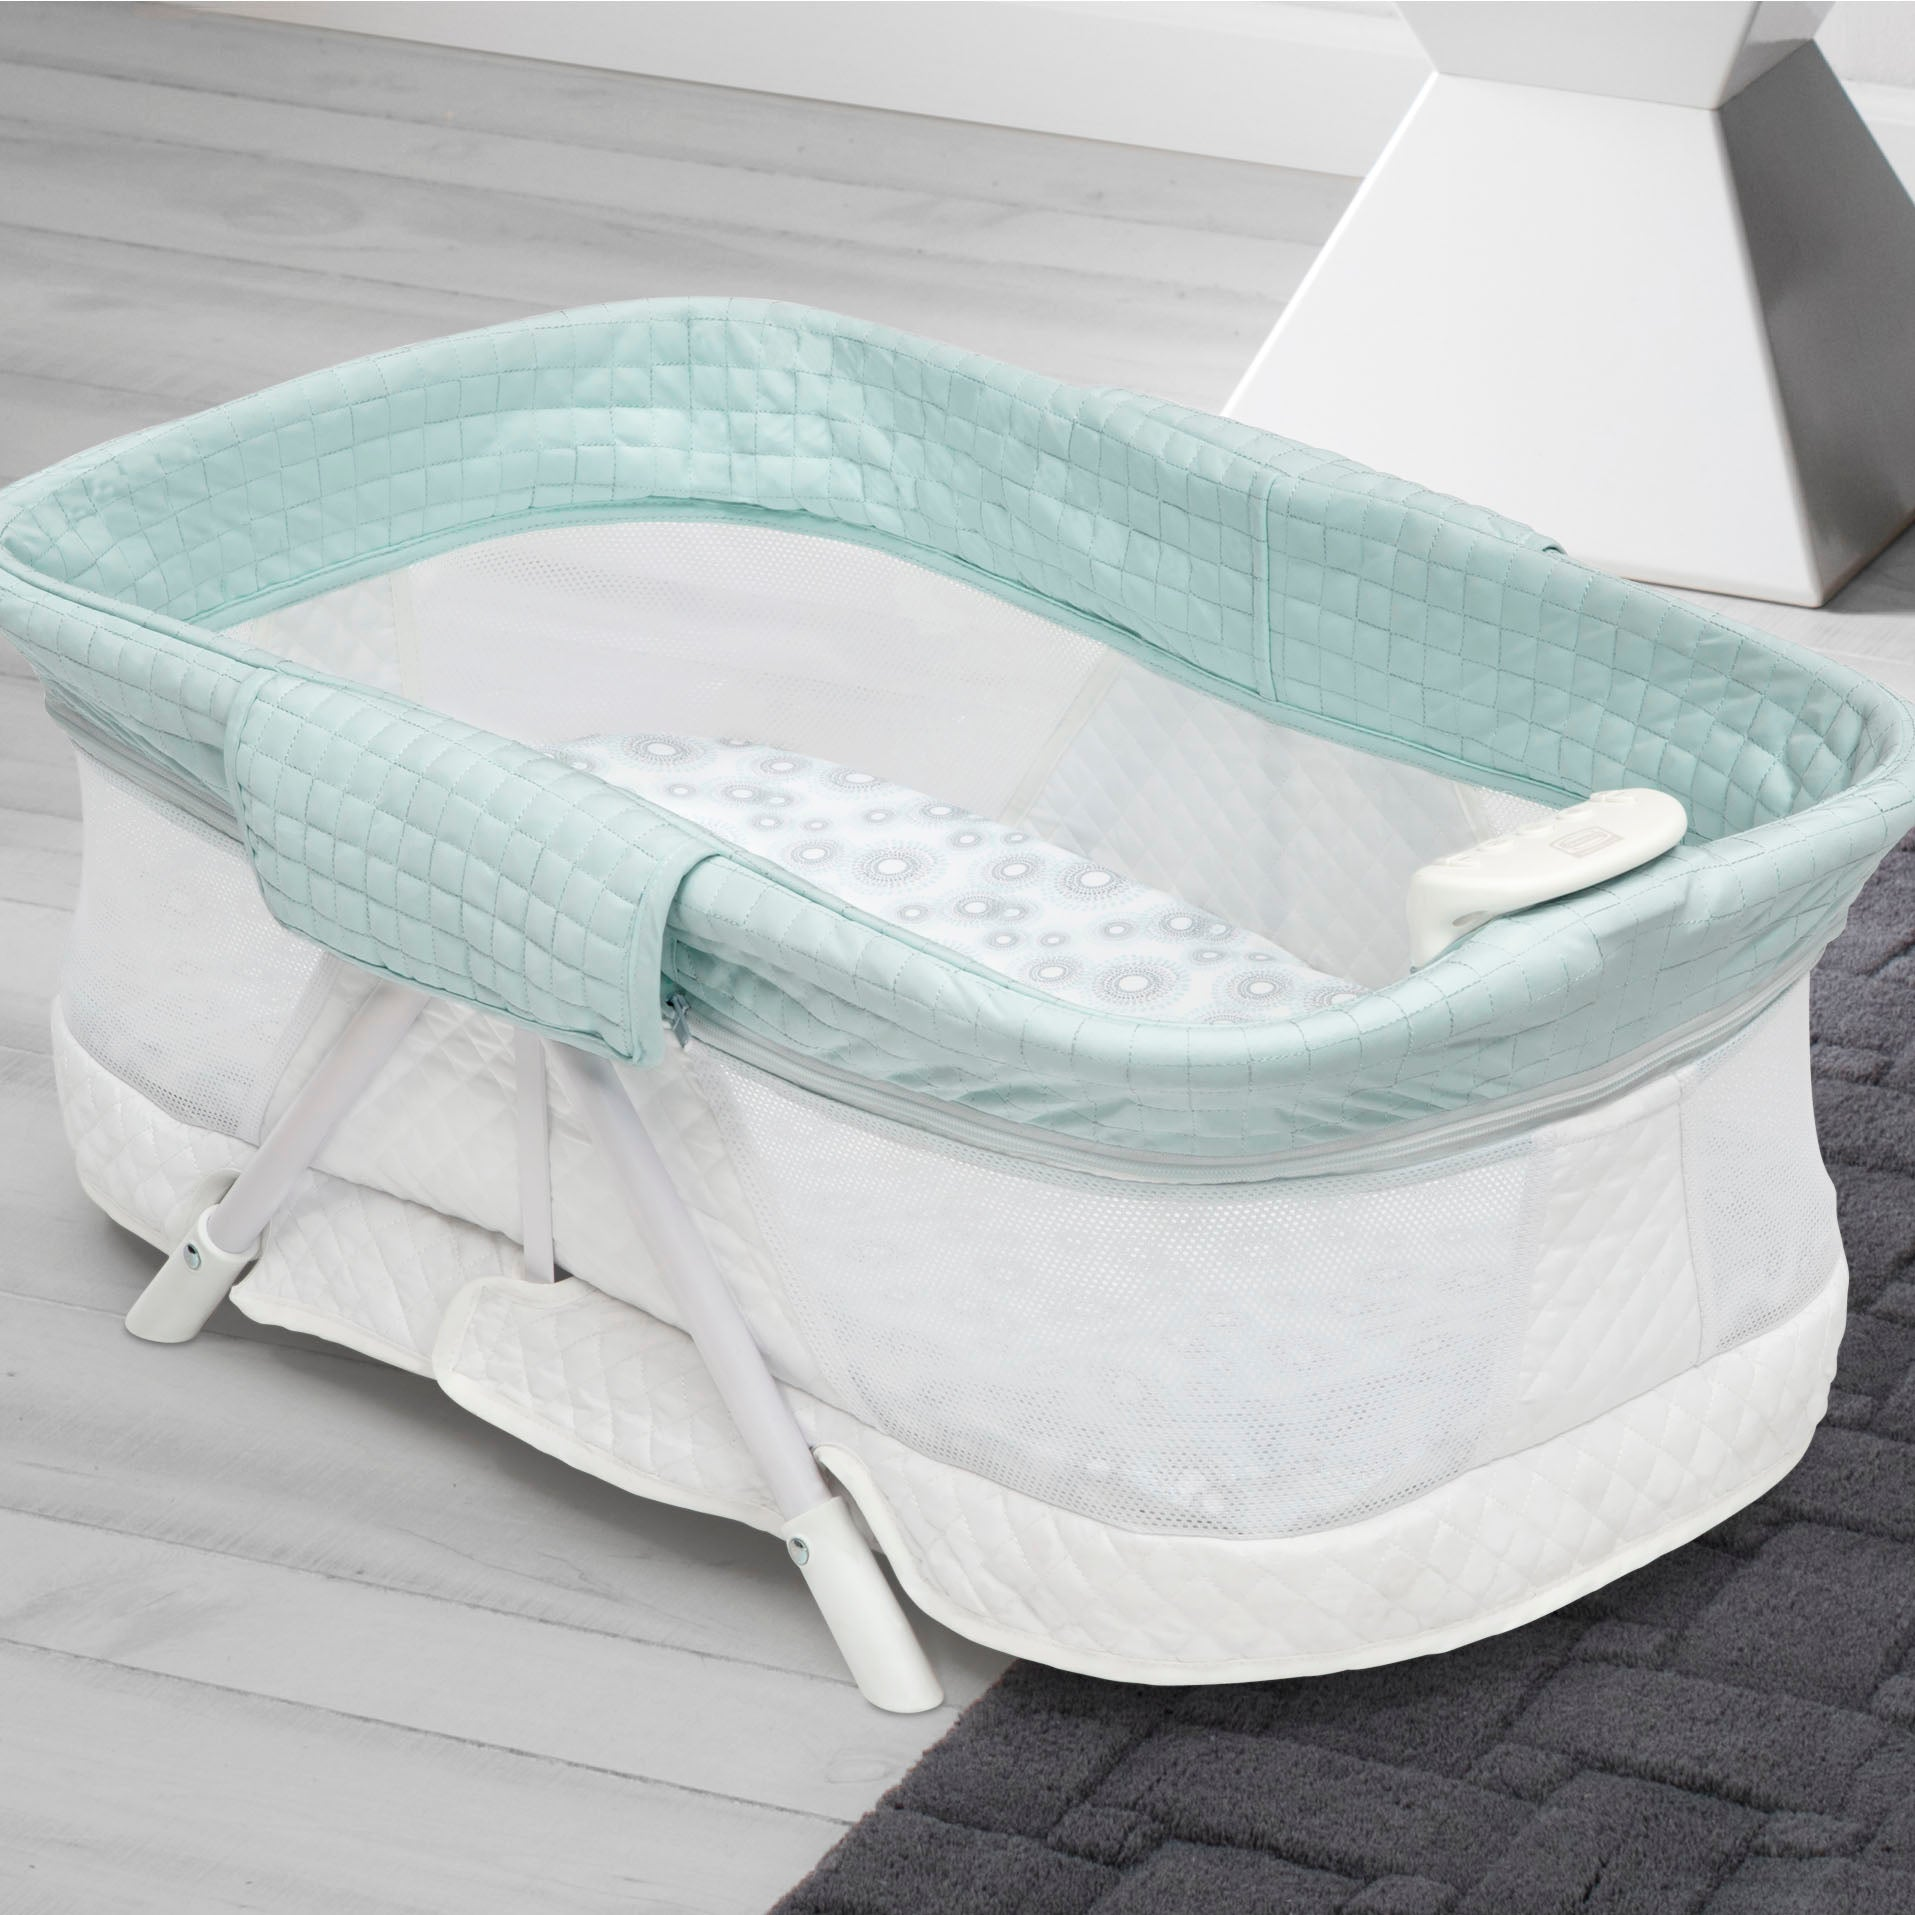 Ultra-Compact Travel Bassinet